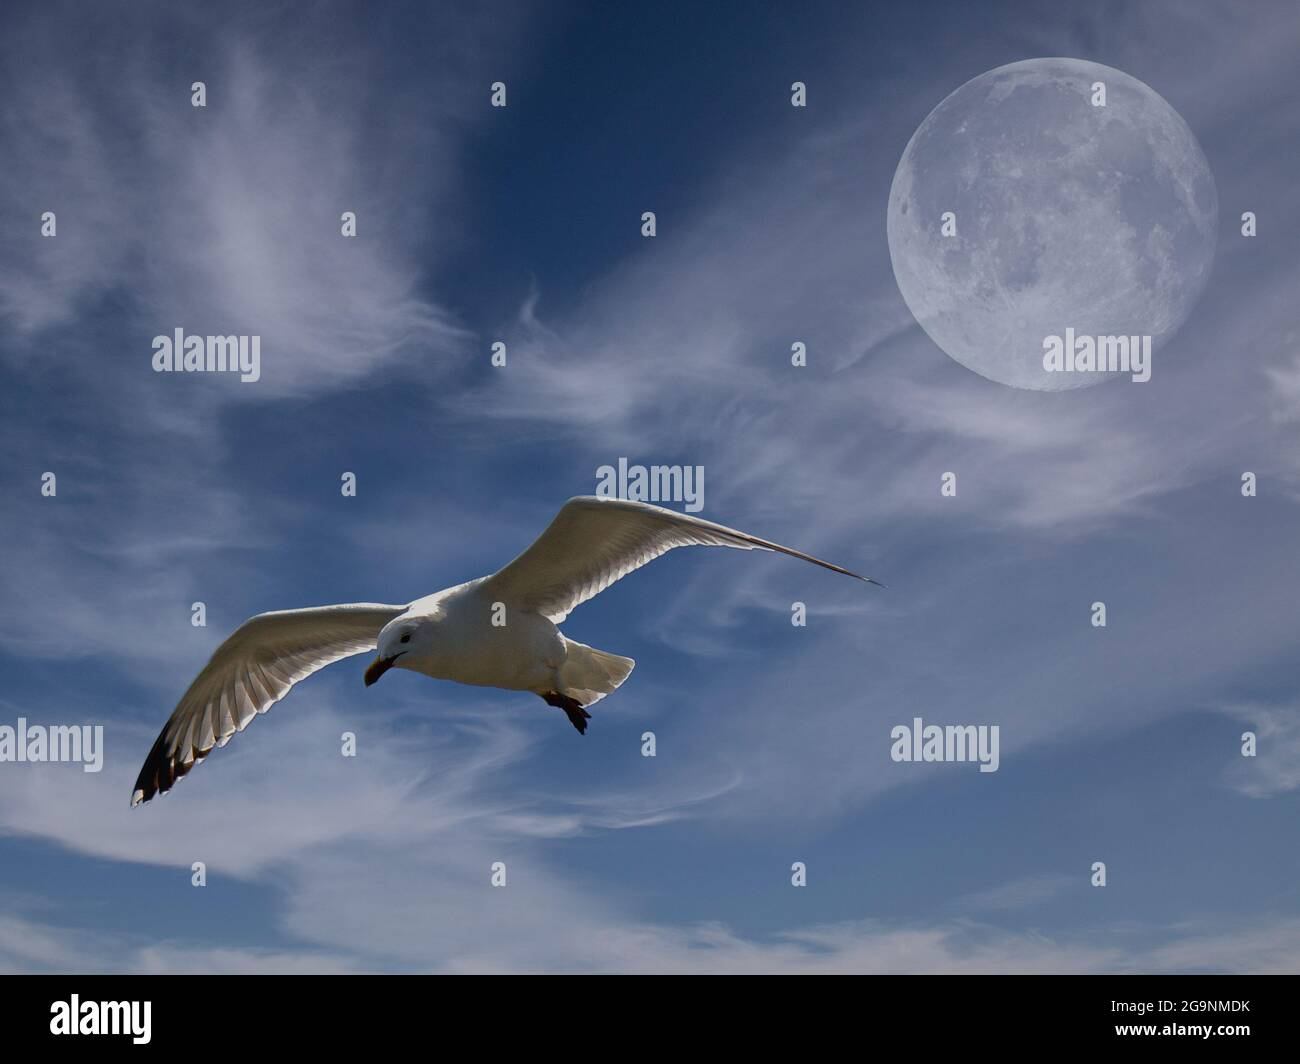 herring-gull-larus-argentatus-gliding-in-front-of-full-moon-with-white-clouds-2G9NMDK.jpg